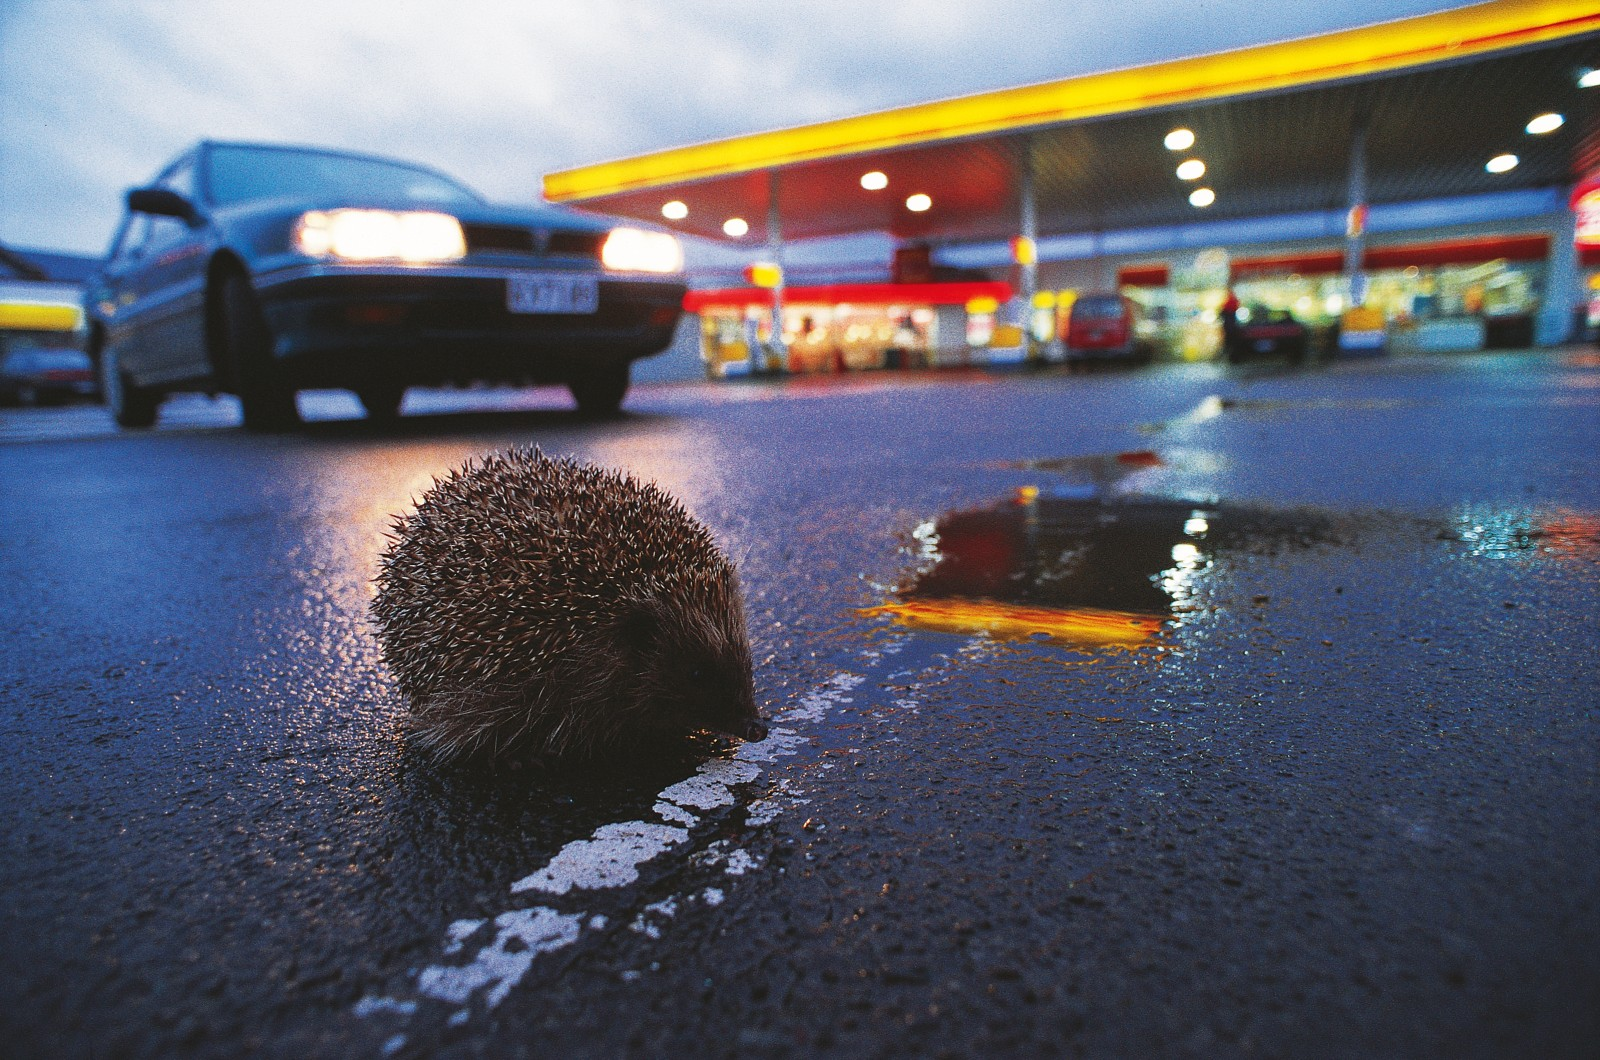 Weak eyes, and unhurried gait and a penchant for following its nose towards and intriguing scent lead many a hedgehog onto streets and close encounters with car tyres. Surprisingly, fewer of the animals perish on our roads today than during the 1950s and 1960s-perhaps a reflection of declining numbers...or of better road sense!